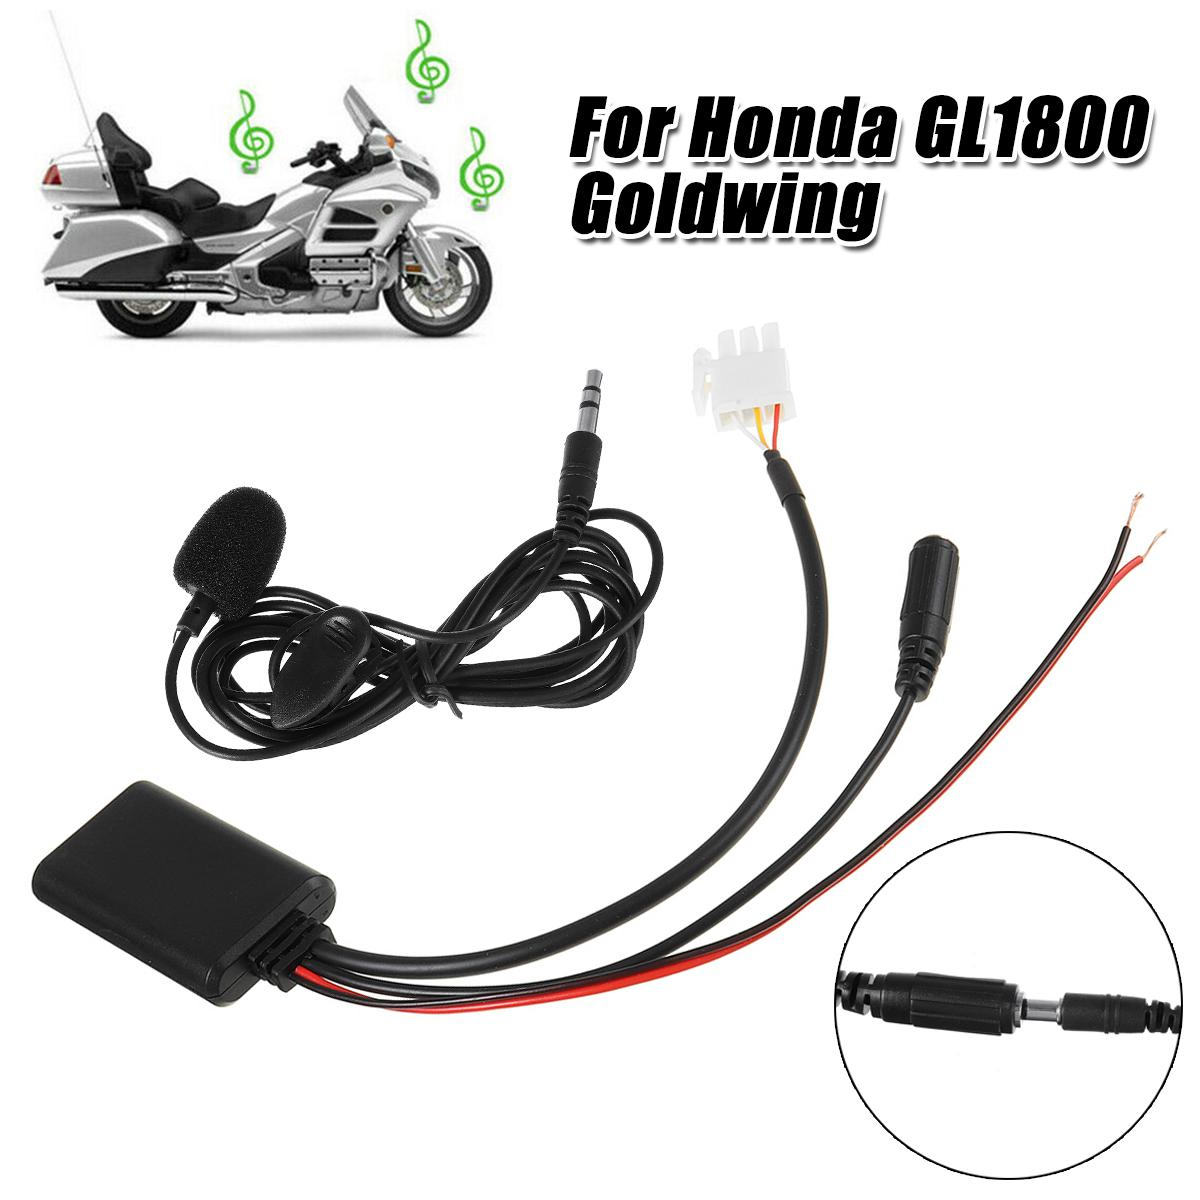 For <font><b>Honda</b></font> GL1800 Goldwing Motorcycle 3Pin AUX Audio <font><b>Cable</b></font> <font><b>Adapter</b></font> with Mic Audio Receiver image